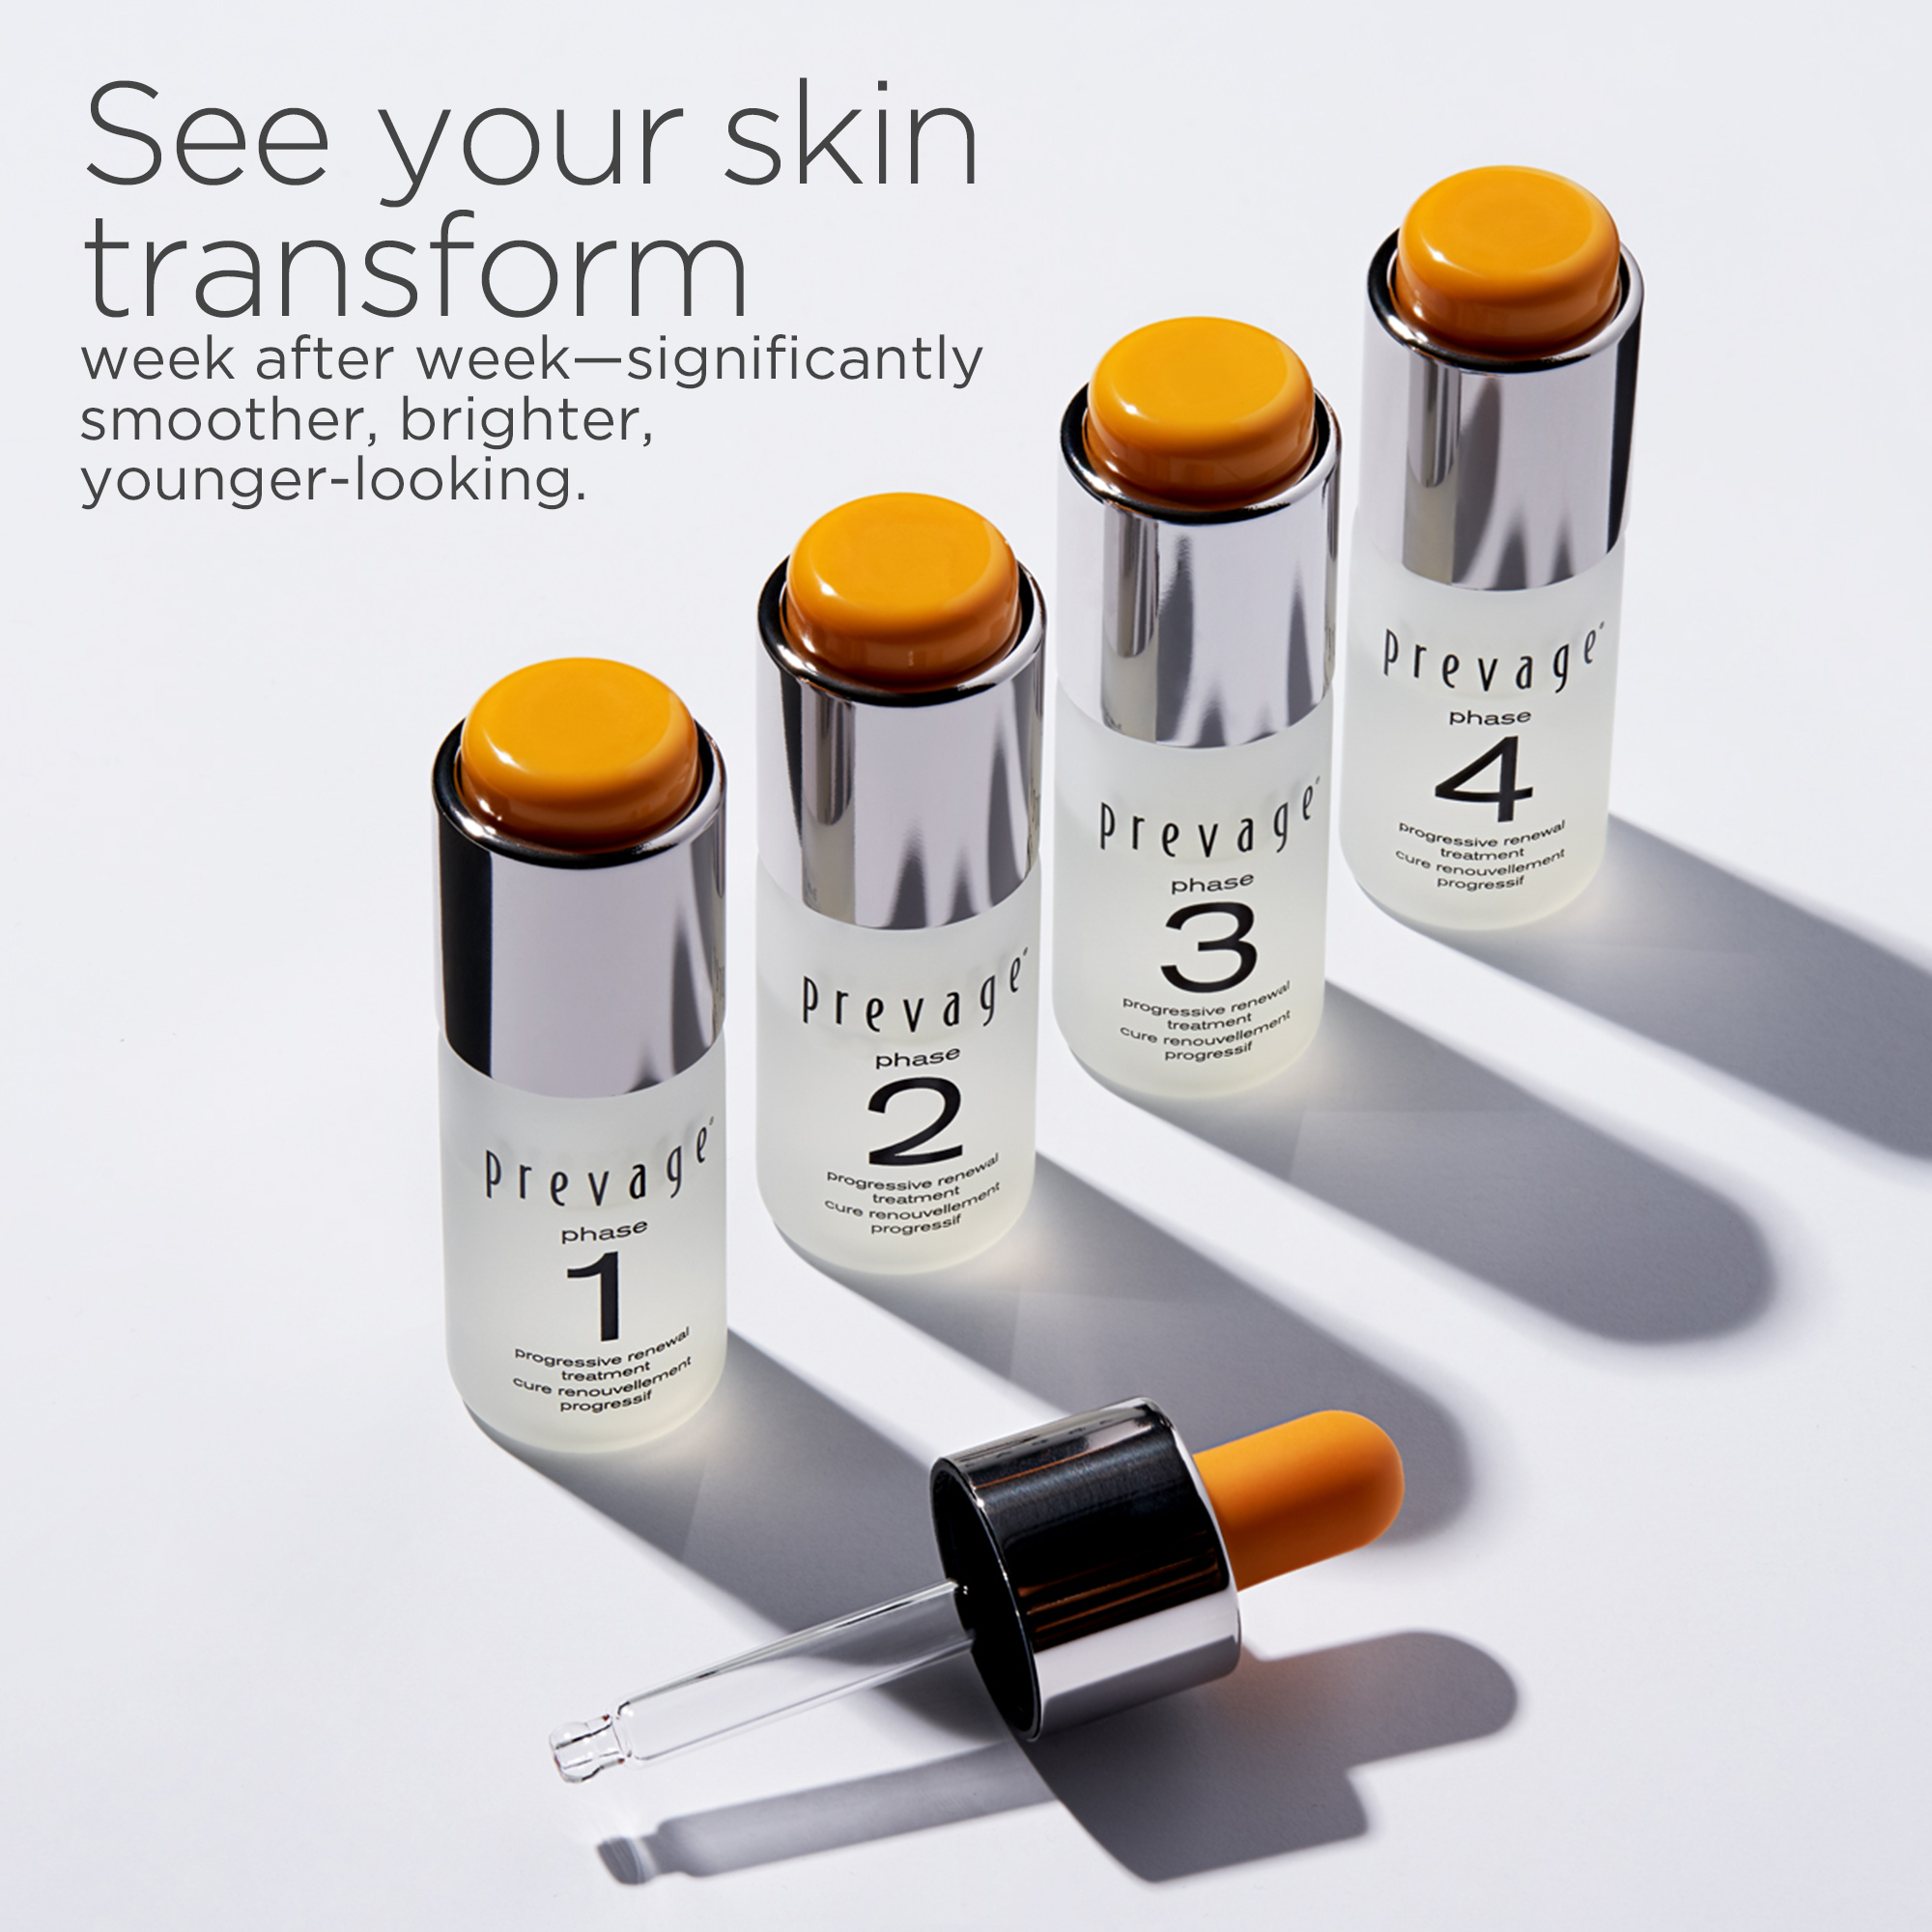 See your skin transform week after week-significantly smoother, brighter, younger-looking.